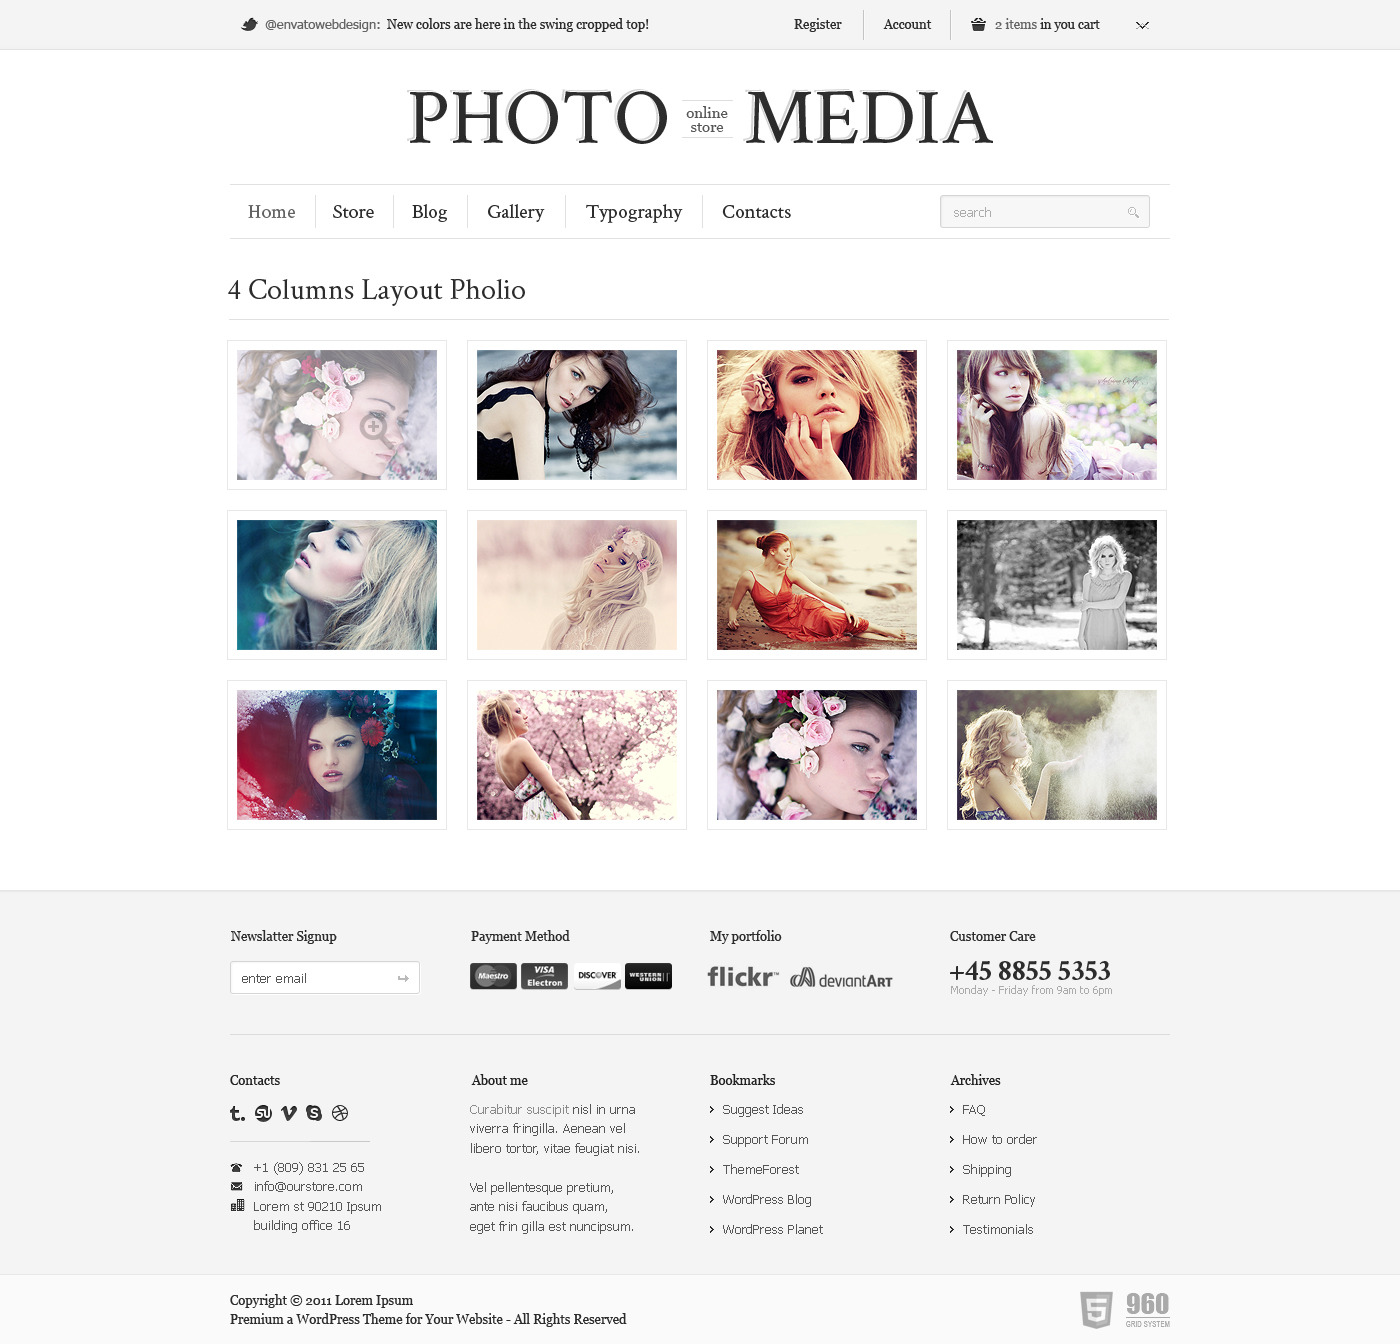 Phomedia Wordpress Theme - A WP E-Commerce theme - Portfolio page overview